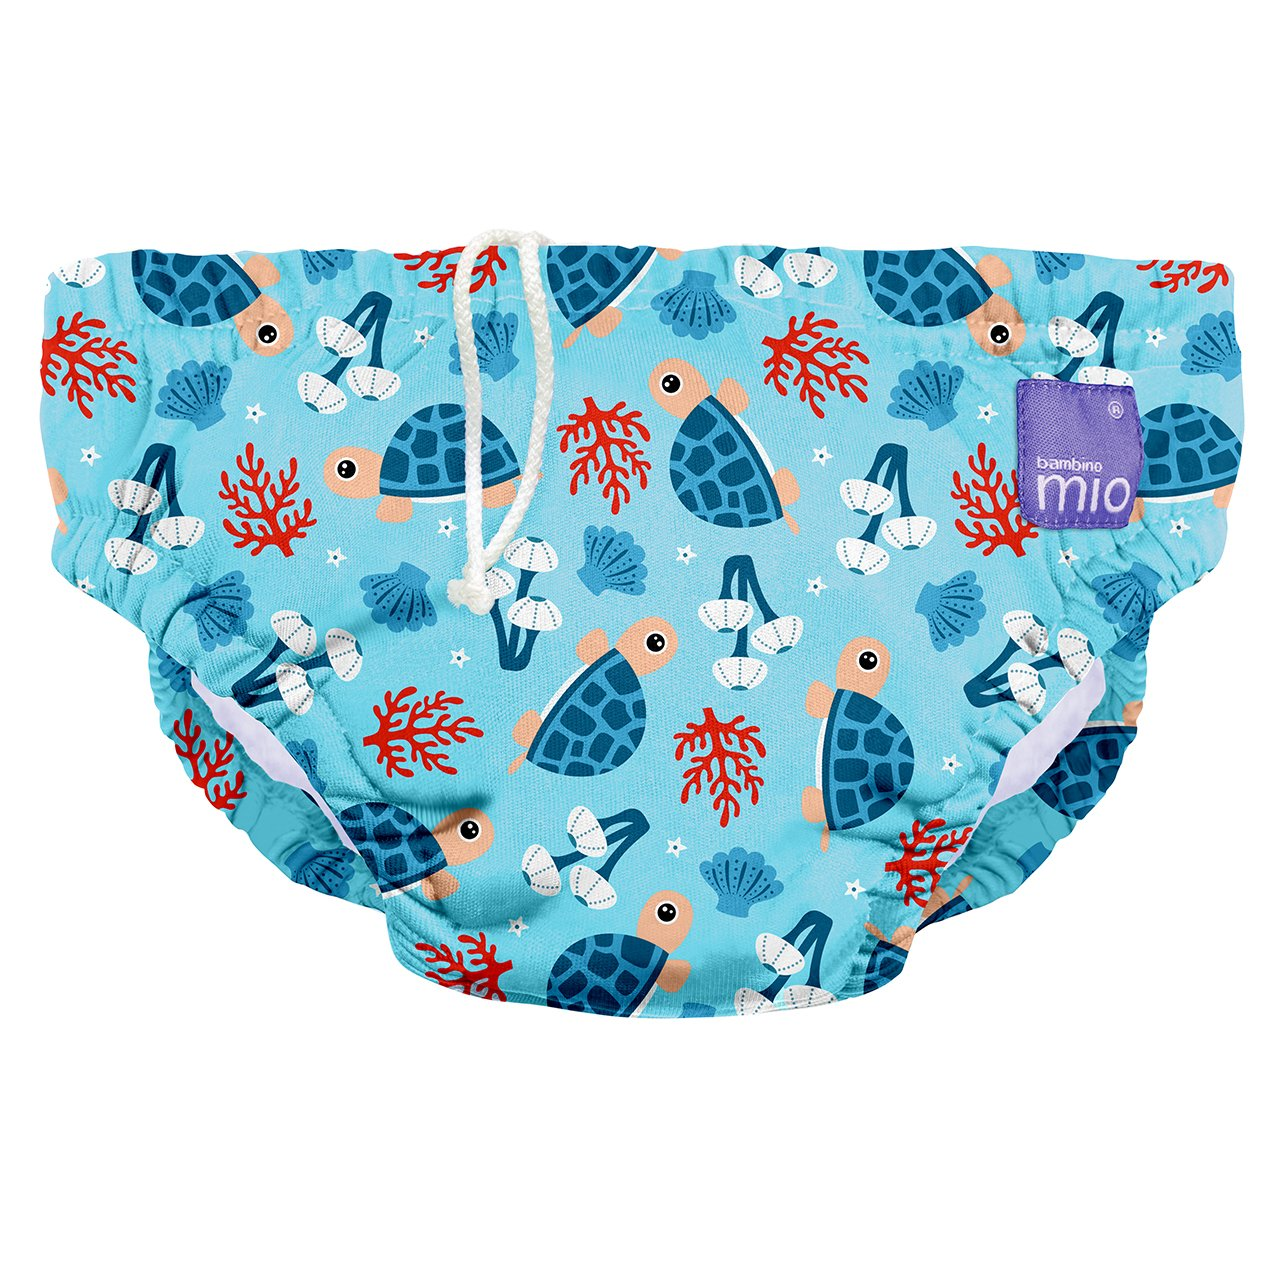 1-2 Years Coral Reef Reusable Swim Nappy Bambino Mio Multicolour Large